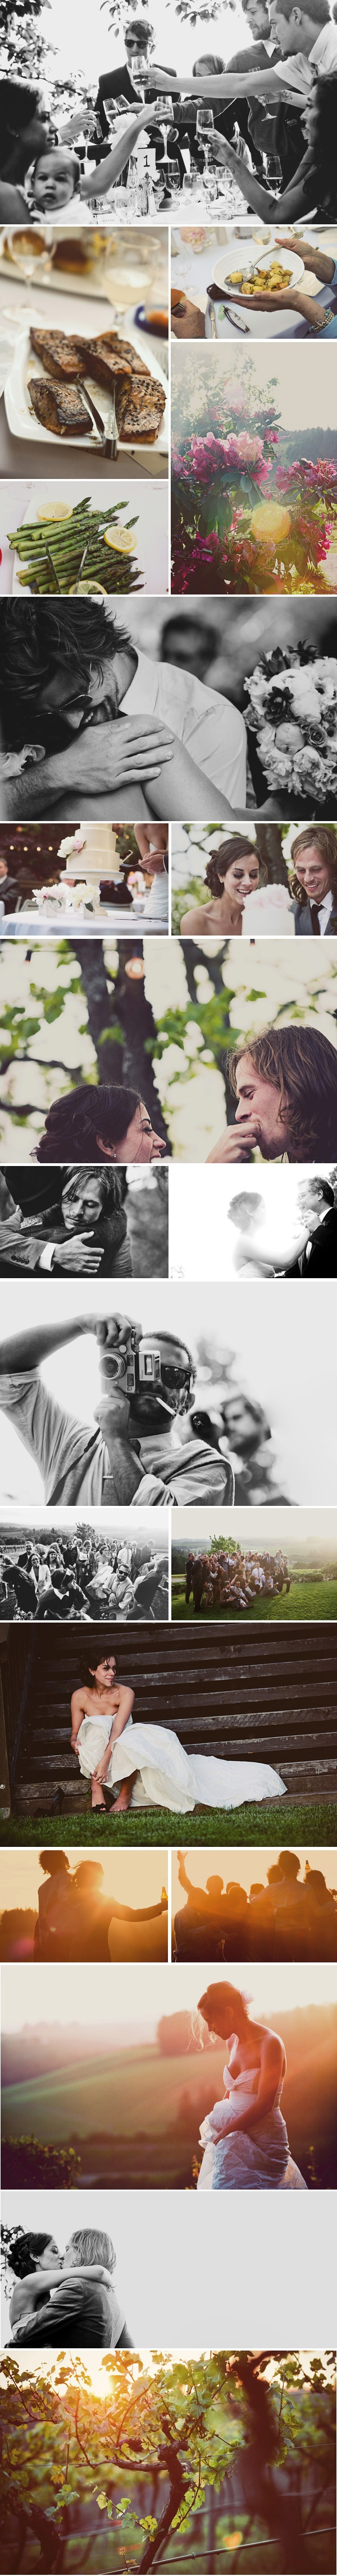 best black and white photos images on pinterest photography